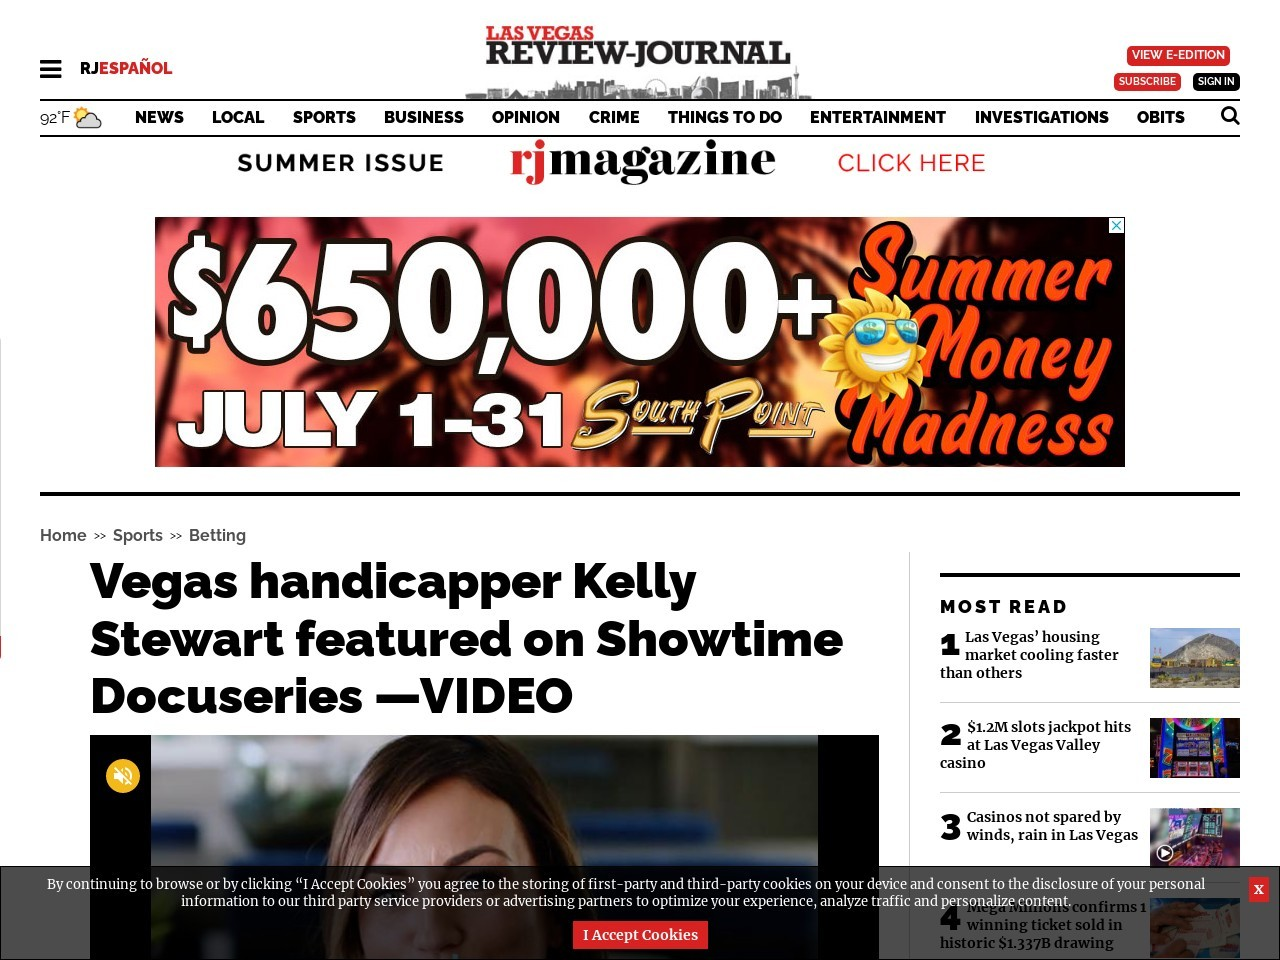 Vegas handicapper Kelly Stewart featured on Showtime Docuseries —VIDEO